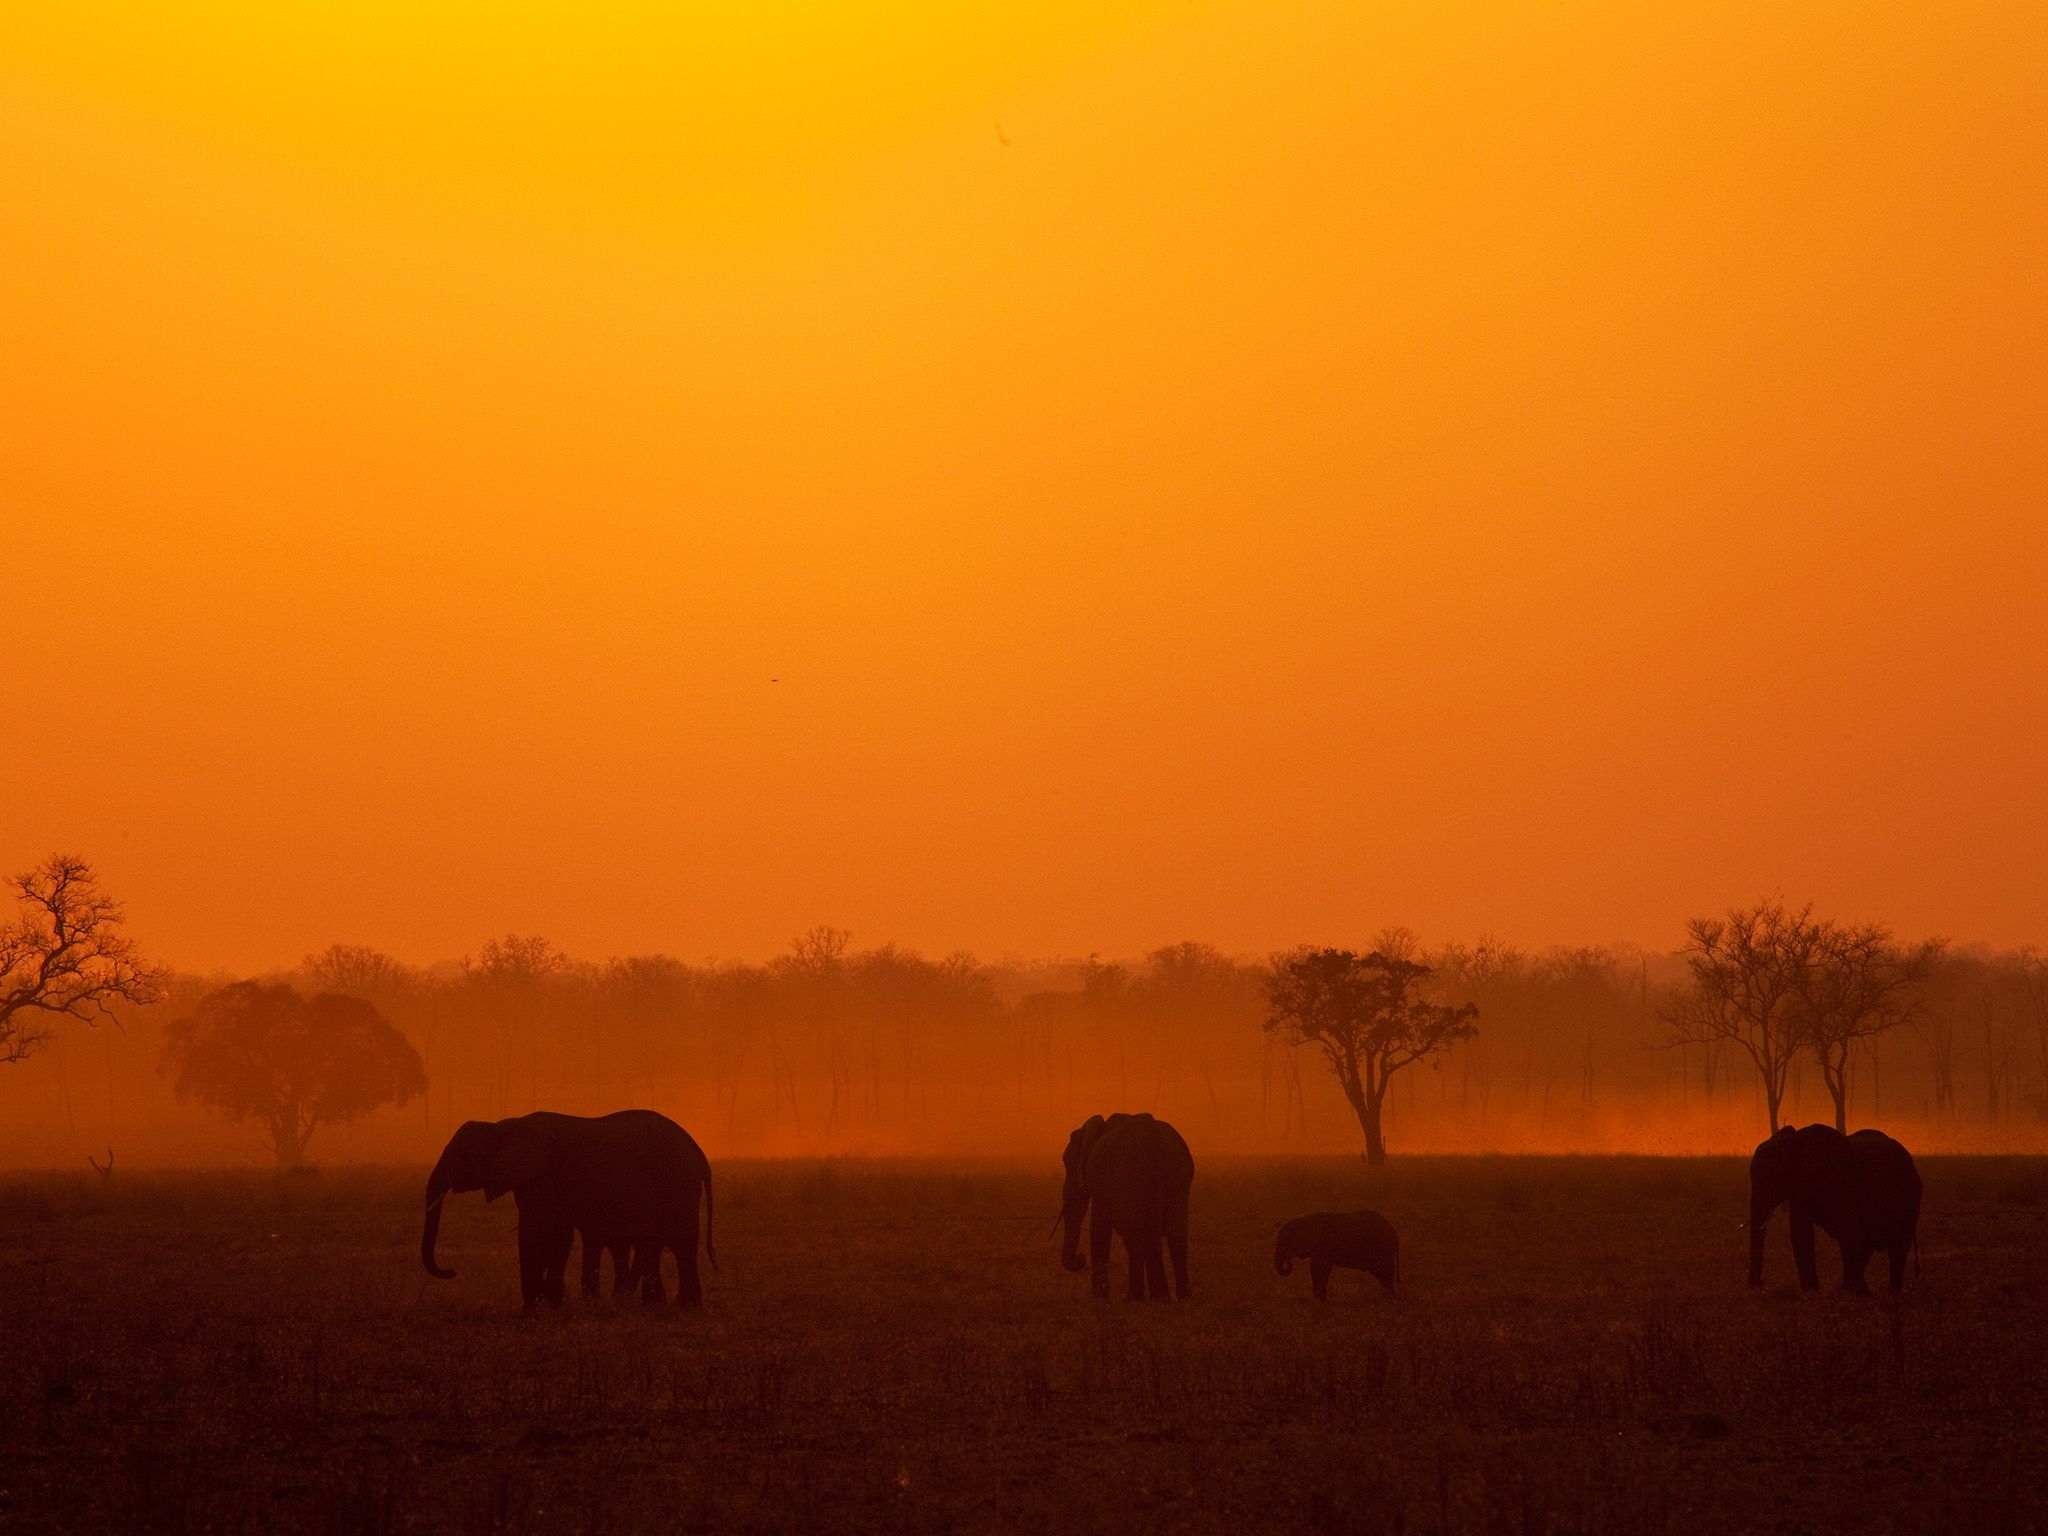 Elephant herd silhouette in sunset (landscape). Elephant herds tend to head for water during the... [Photo of the day - اکتوبر 2014]